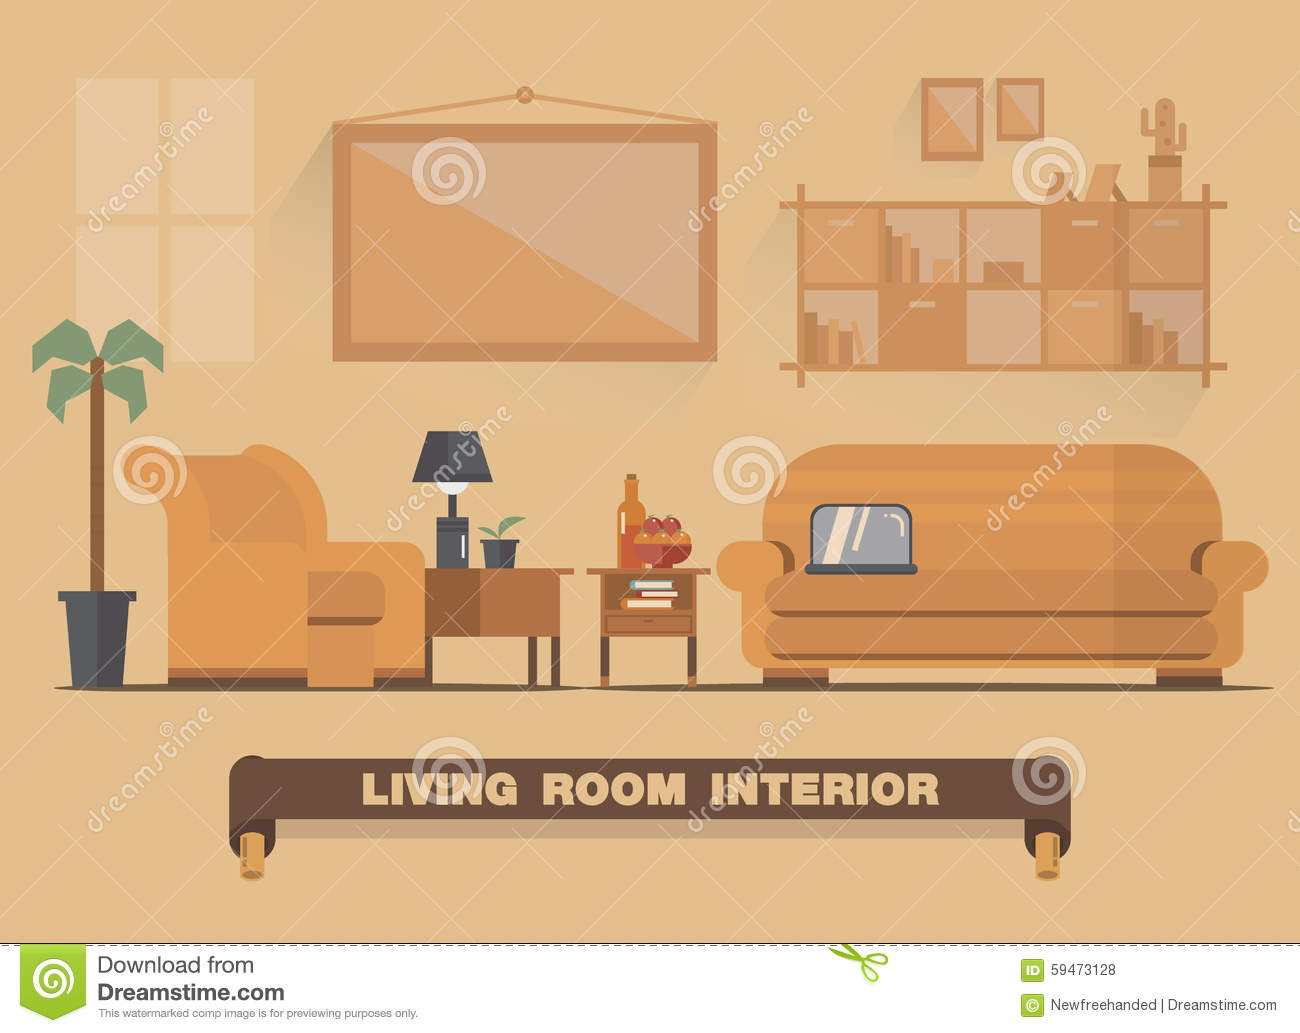 Living Room Interior Element Flat Design Earth Tone